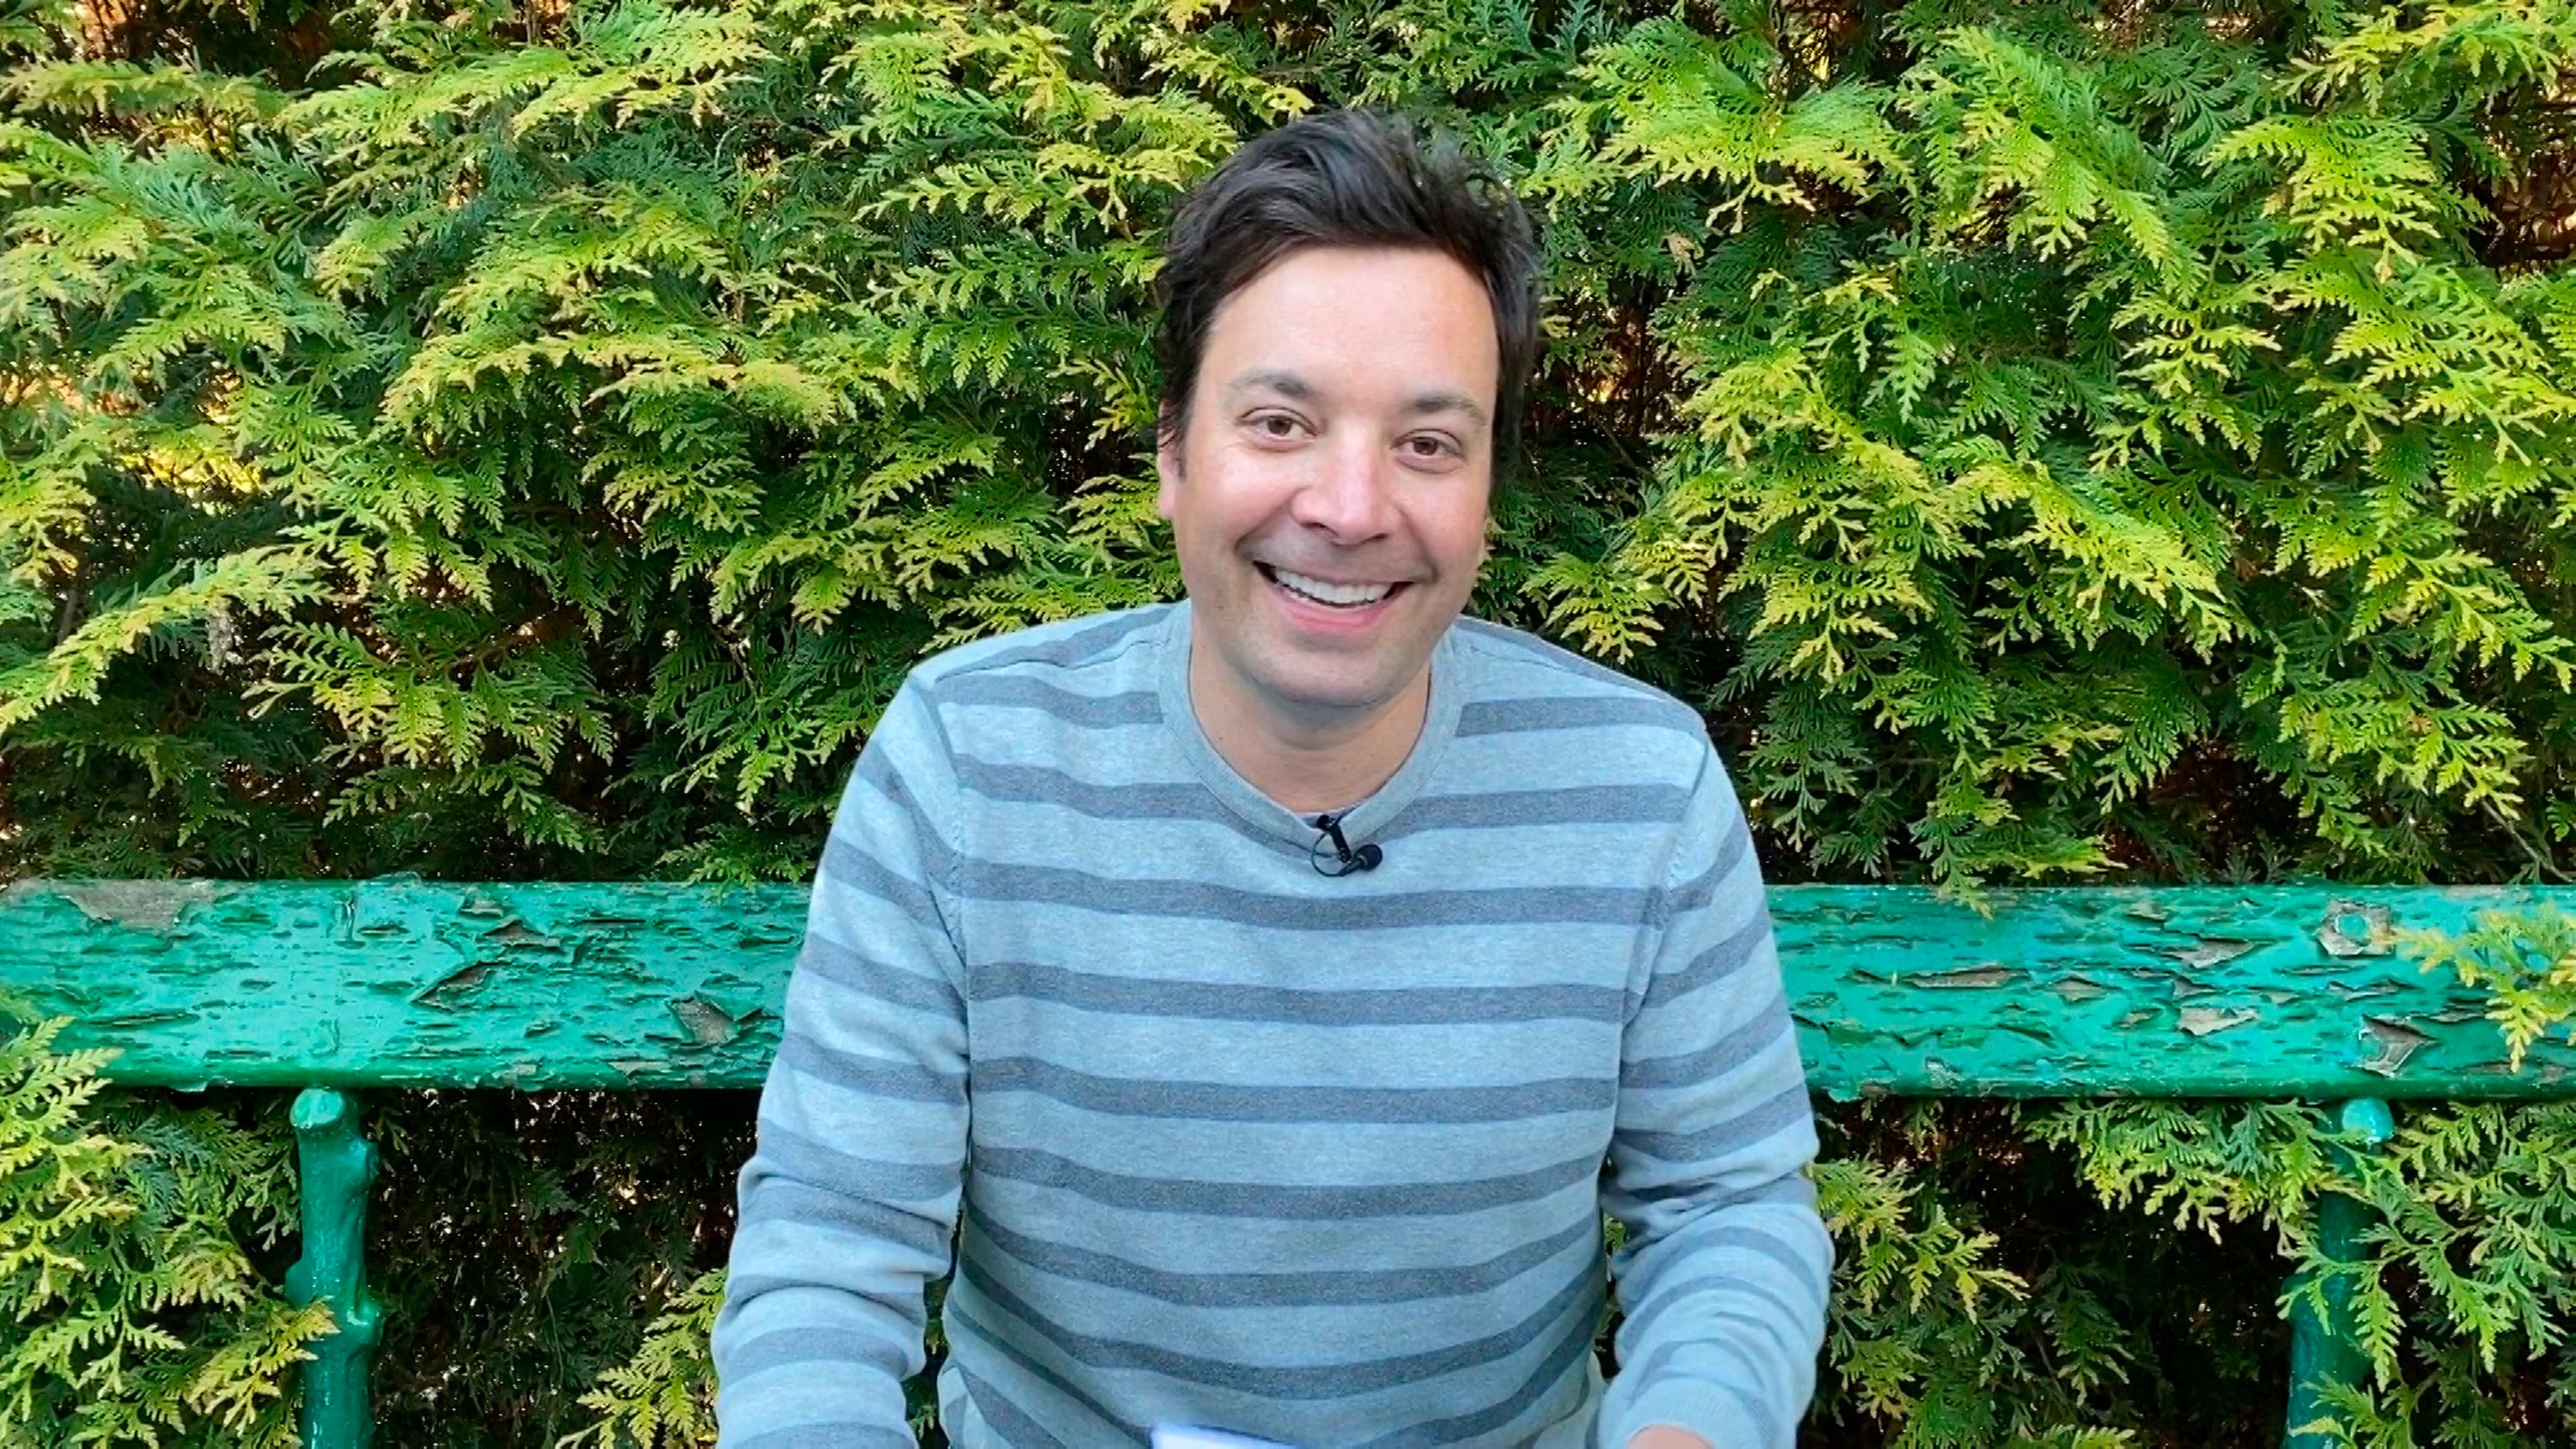 """A portrait of the host of """"The Tonight Show"""" Jimmy Fallon on May 7, 2020 